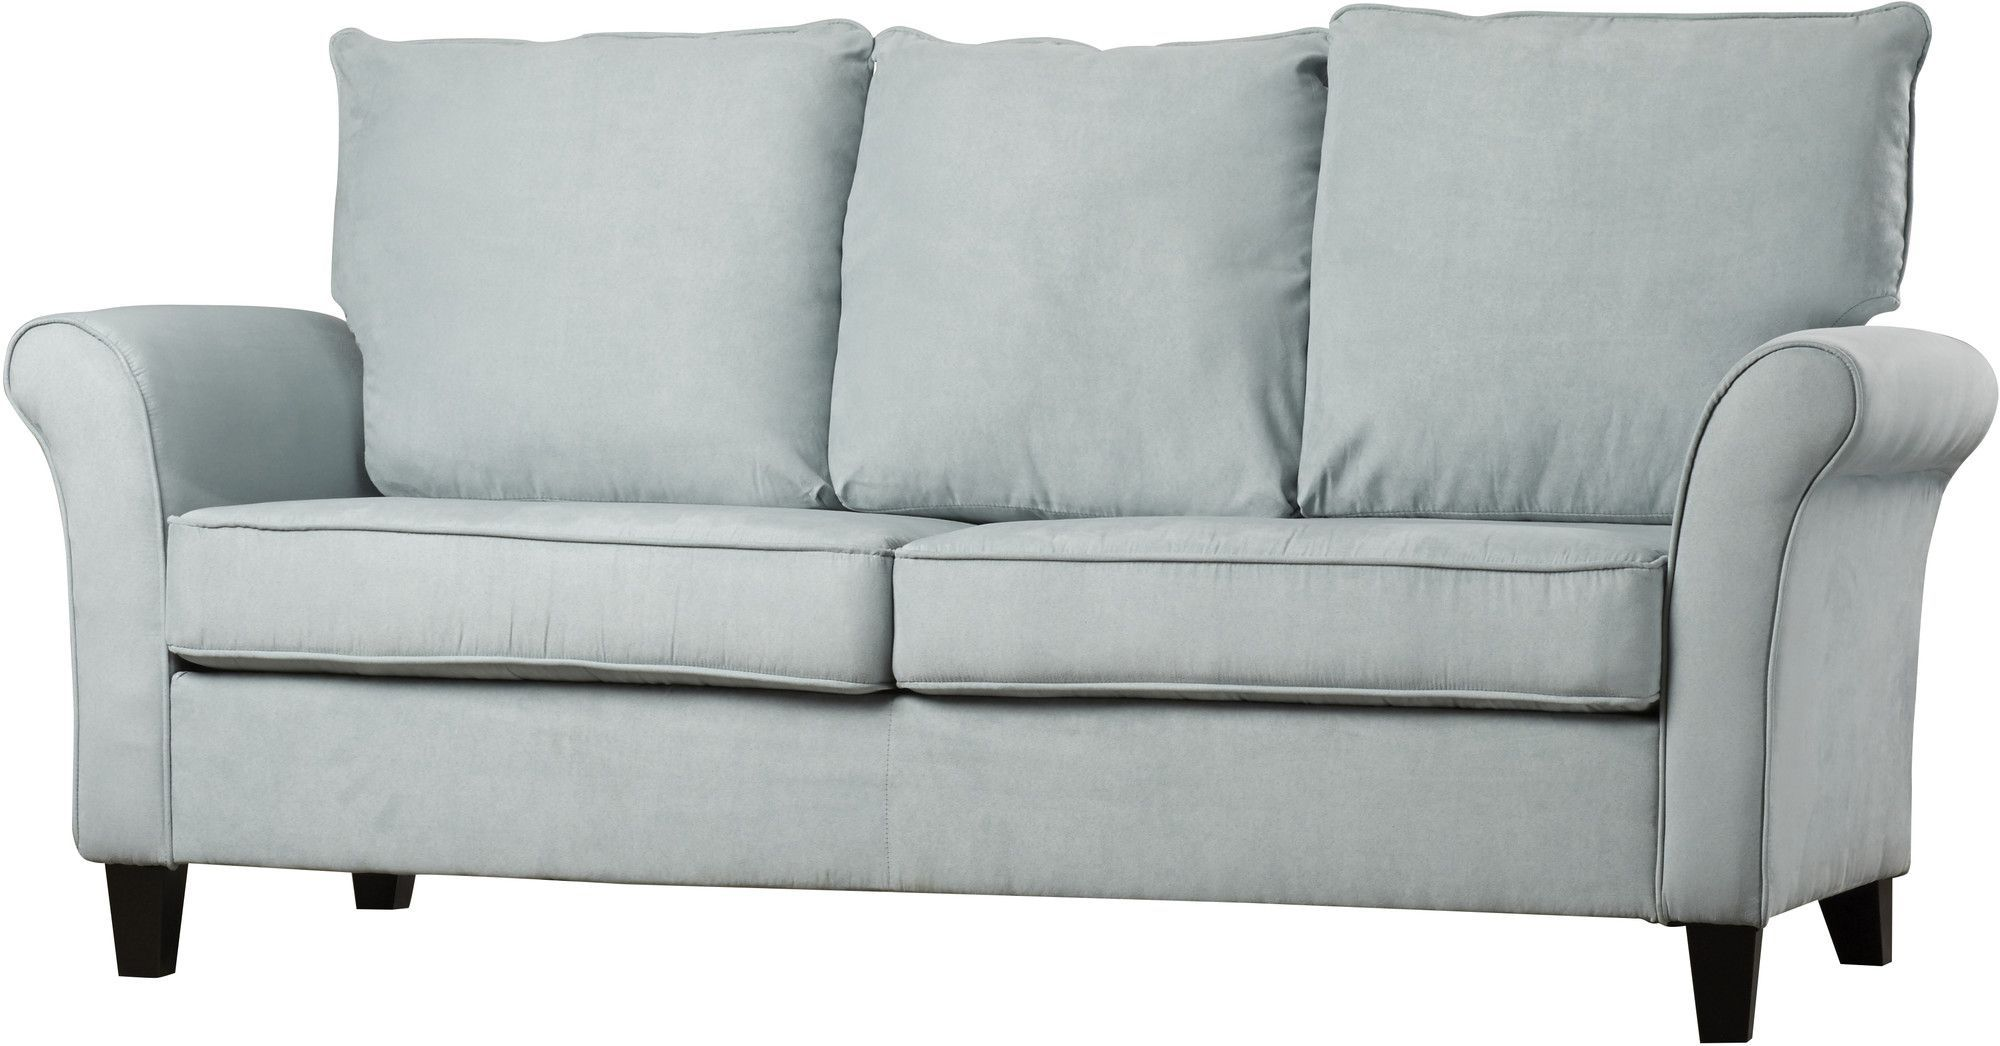 Paget sofa products